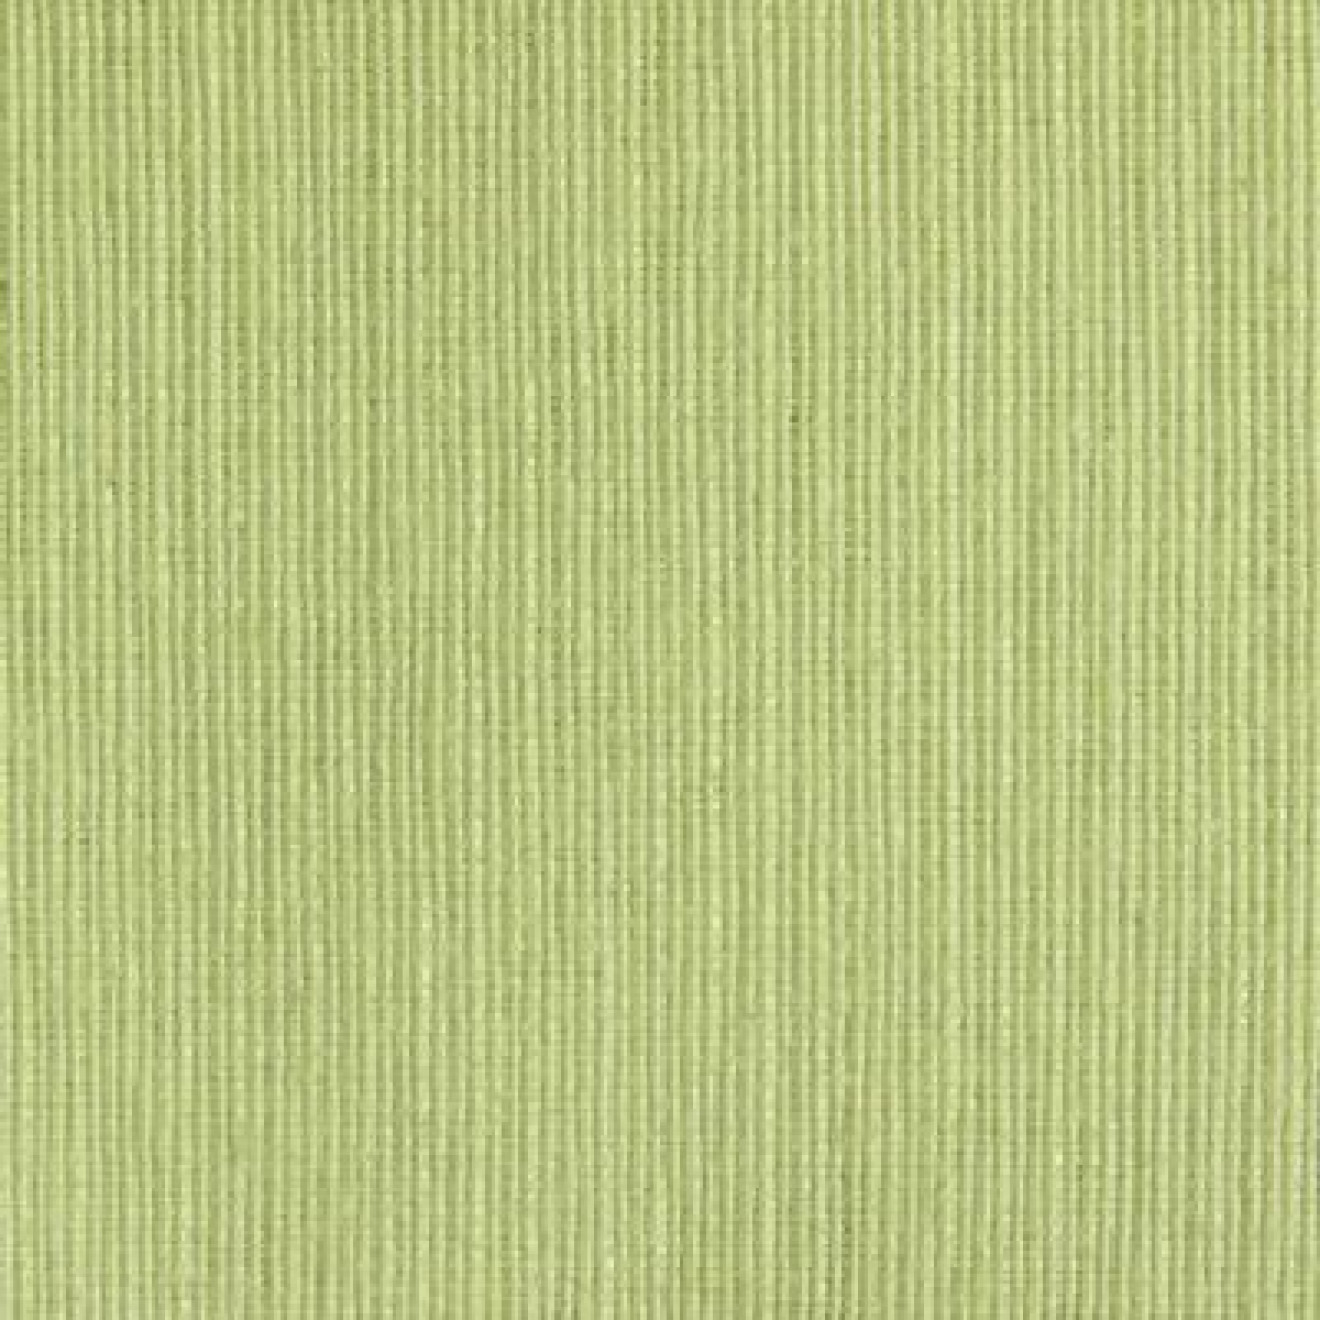 Dreieck - Acrylstoff Loneta Color 116